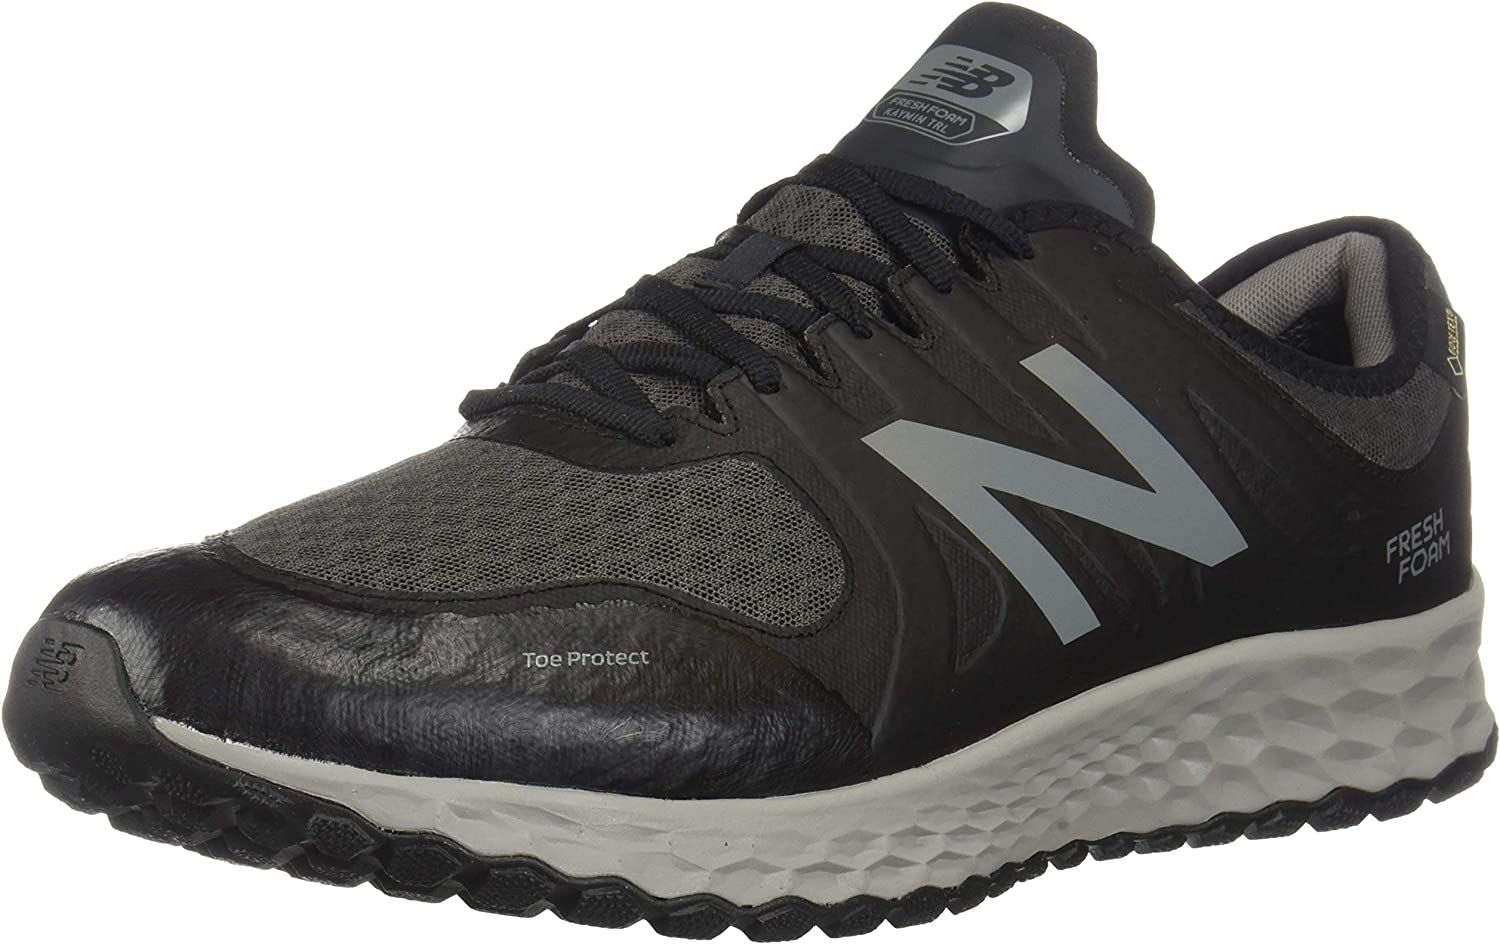 New Balance Men's's Trail Kaymin Gore Tex Running shoes